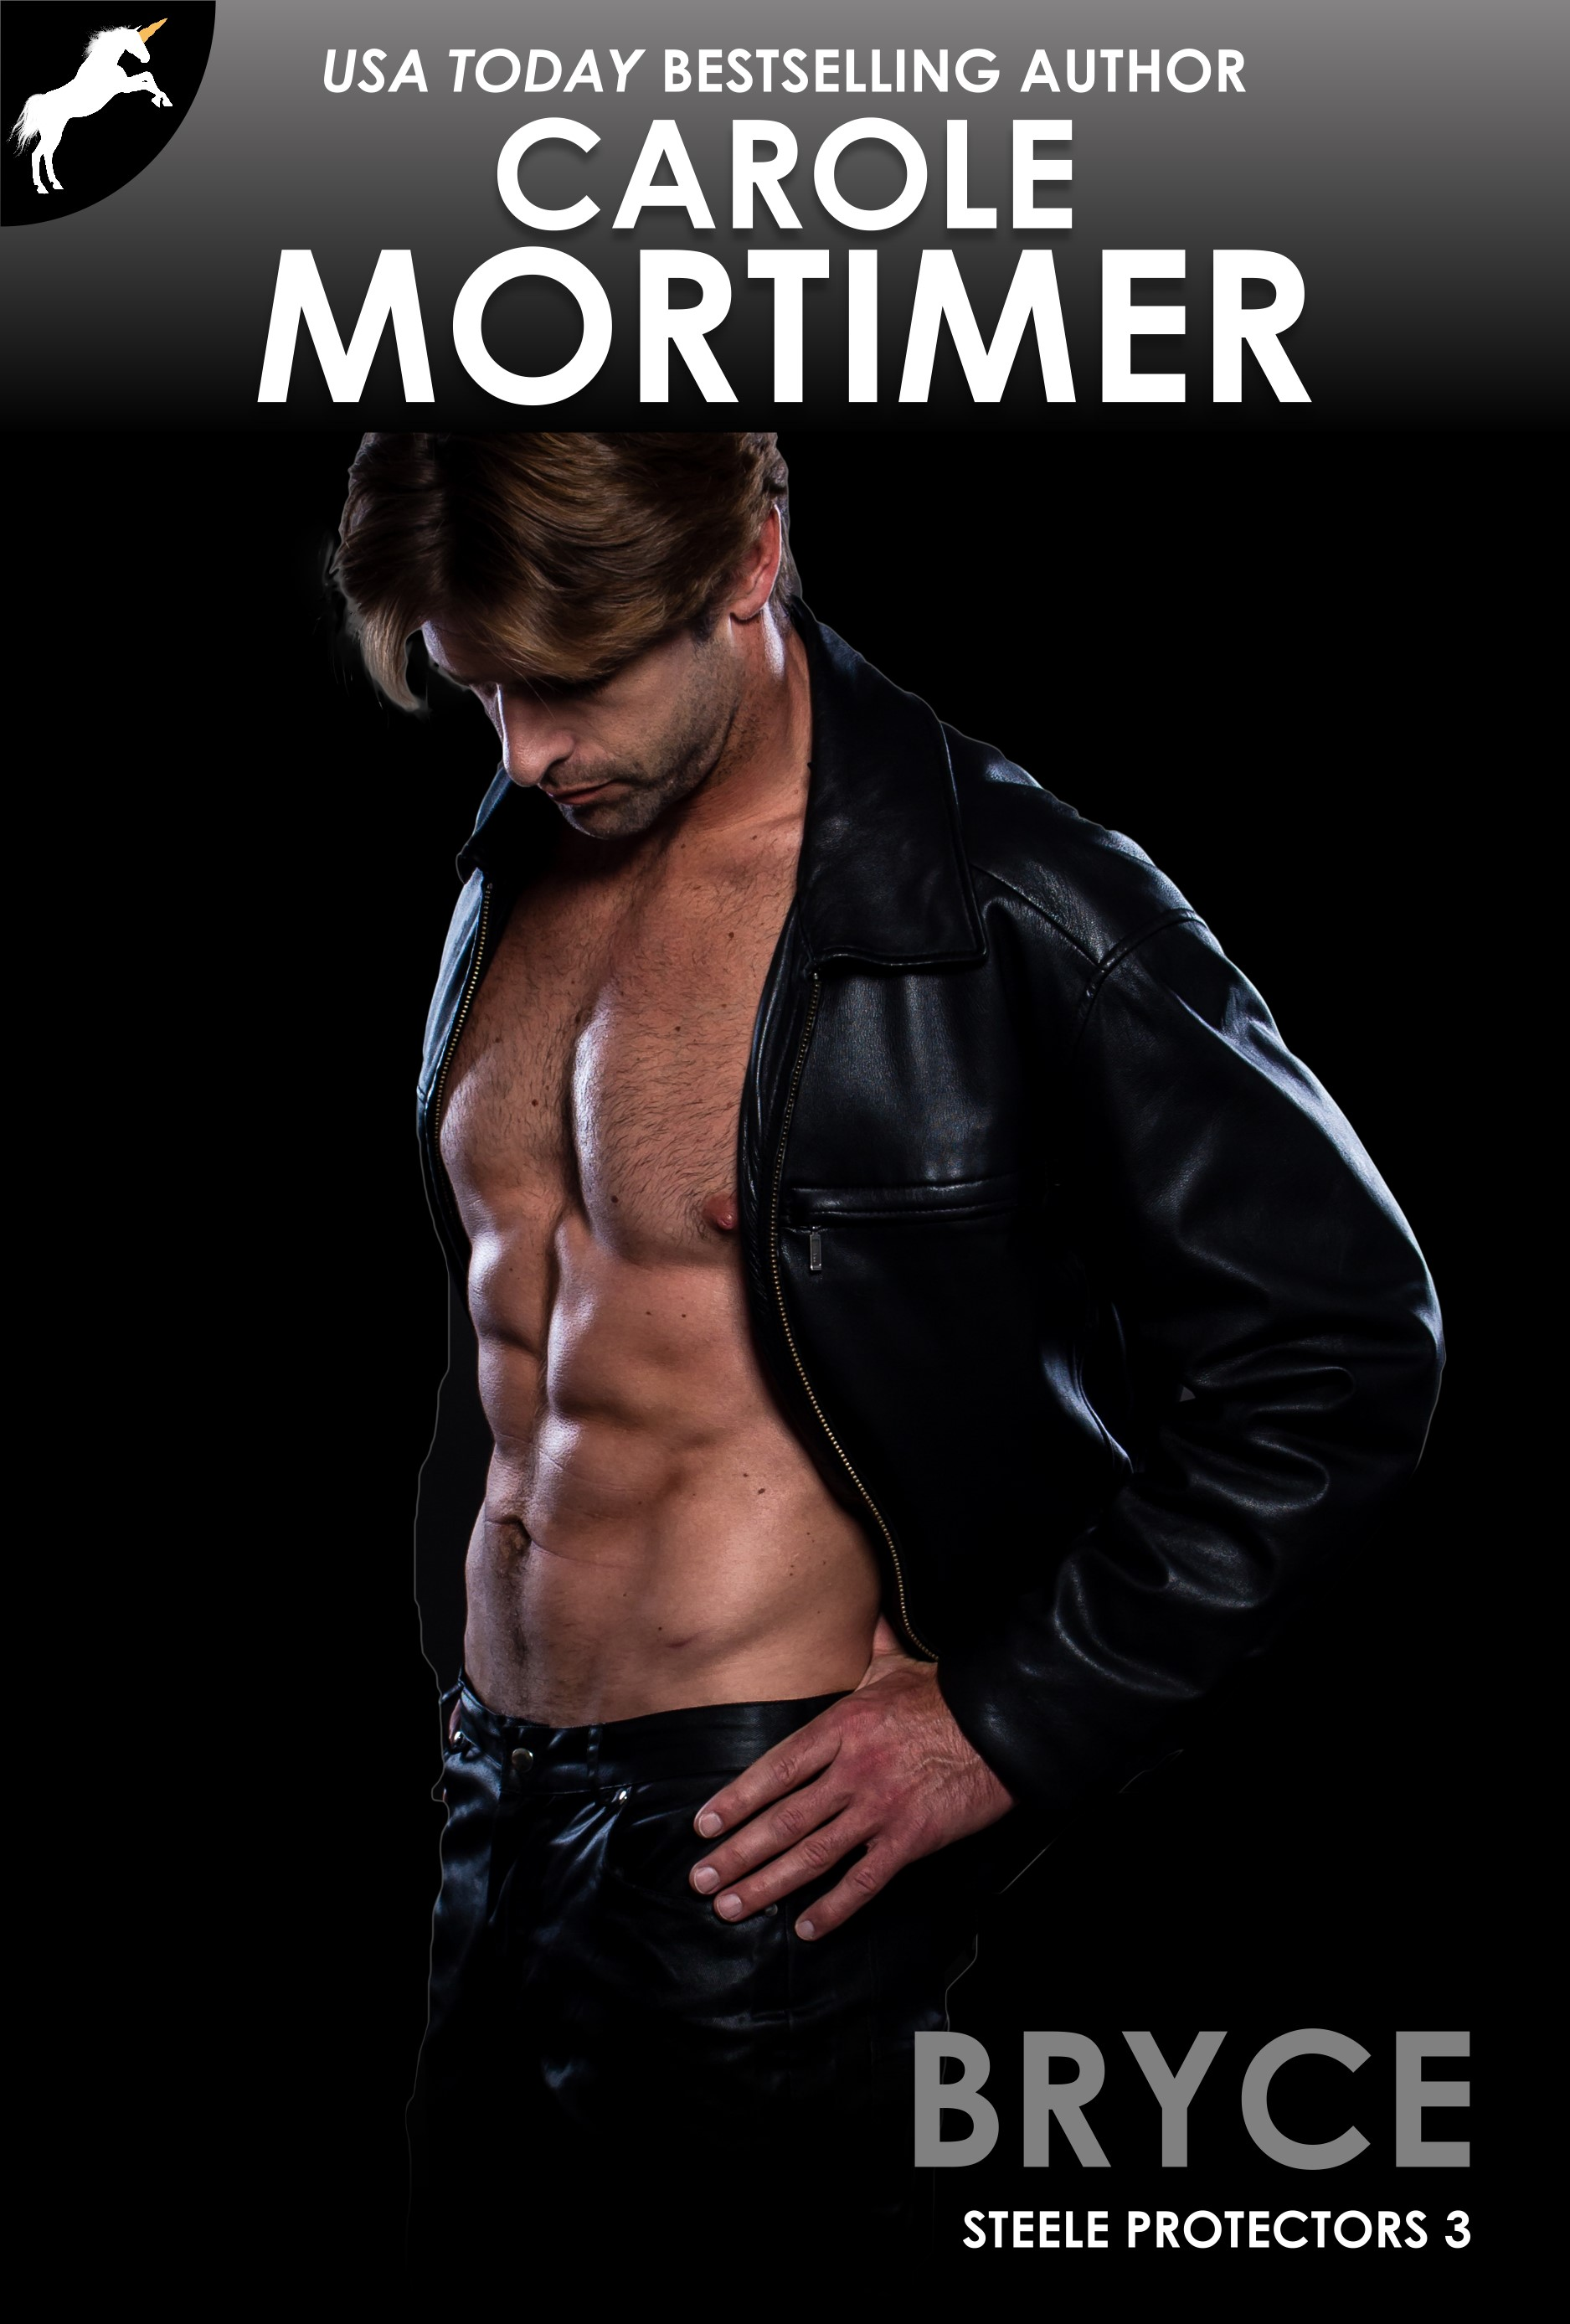 Bryce (Steele Protectors 3), an Ebook by Carole Mortimer